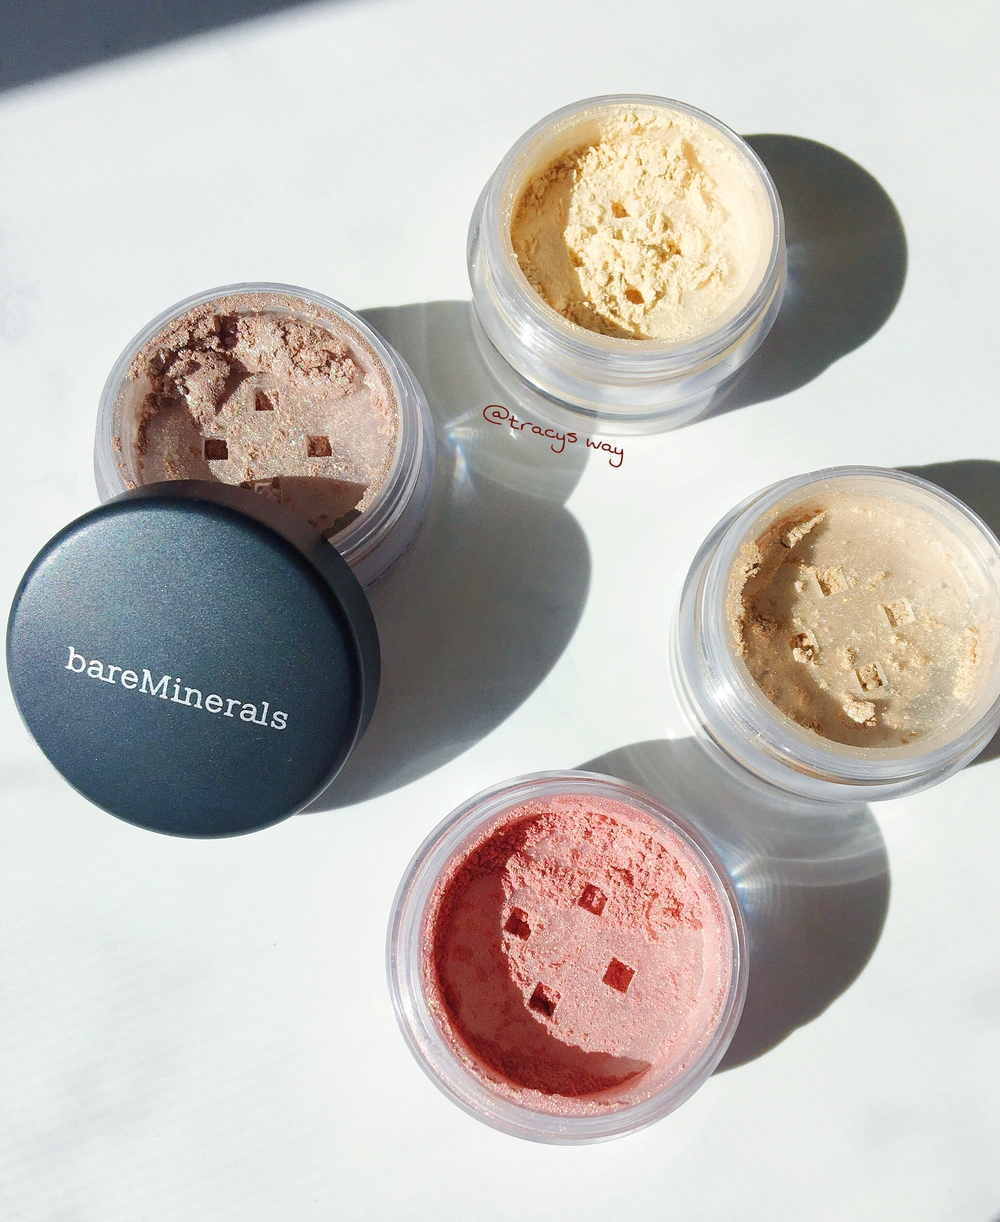 BareMinerals Eyeshadow Review & Swatches